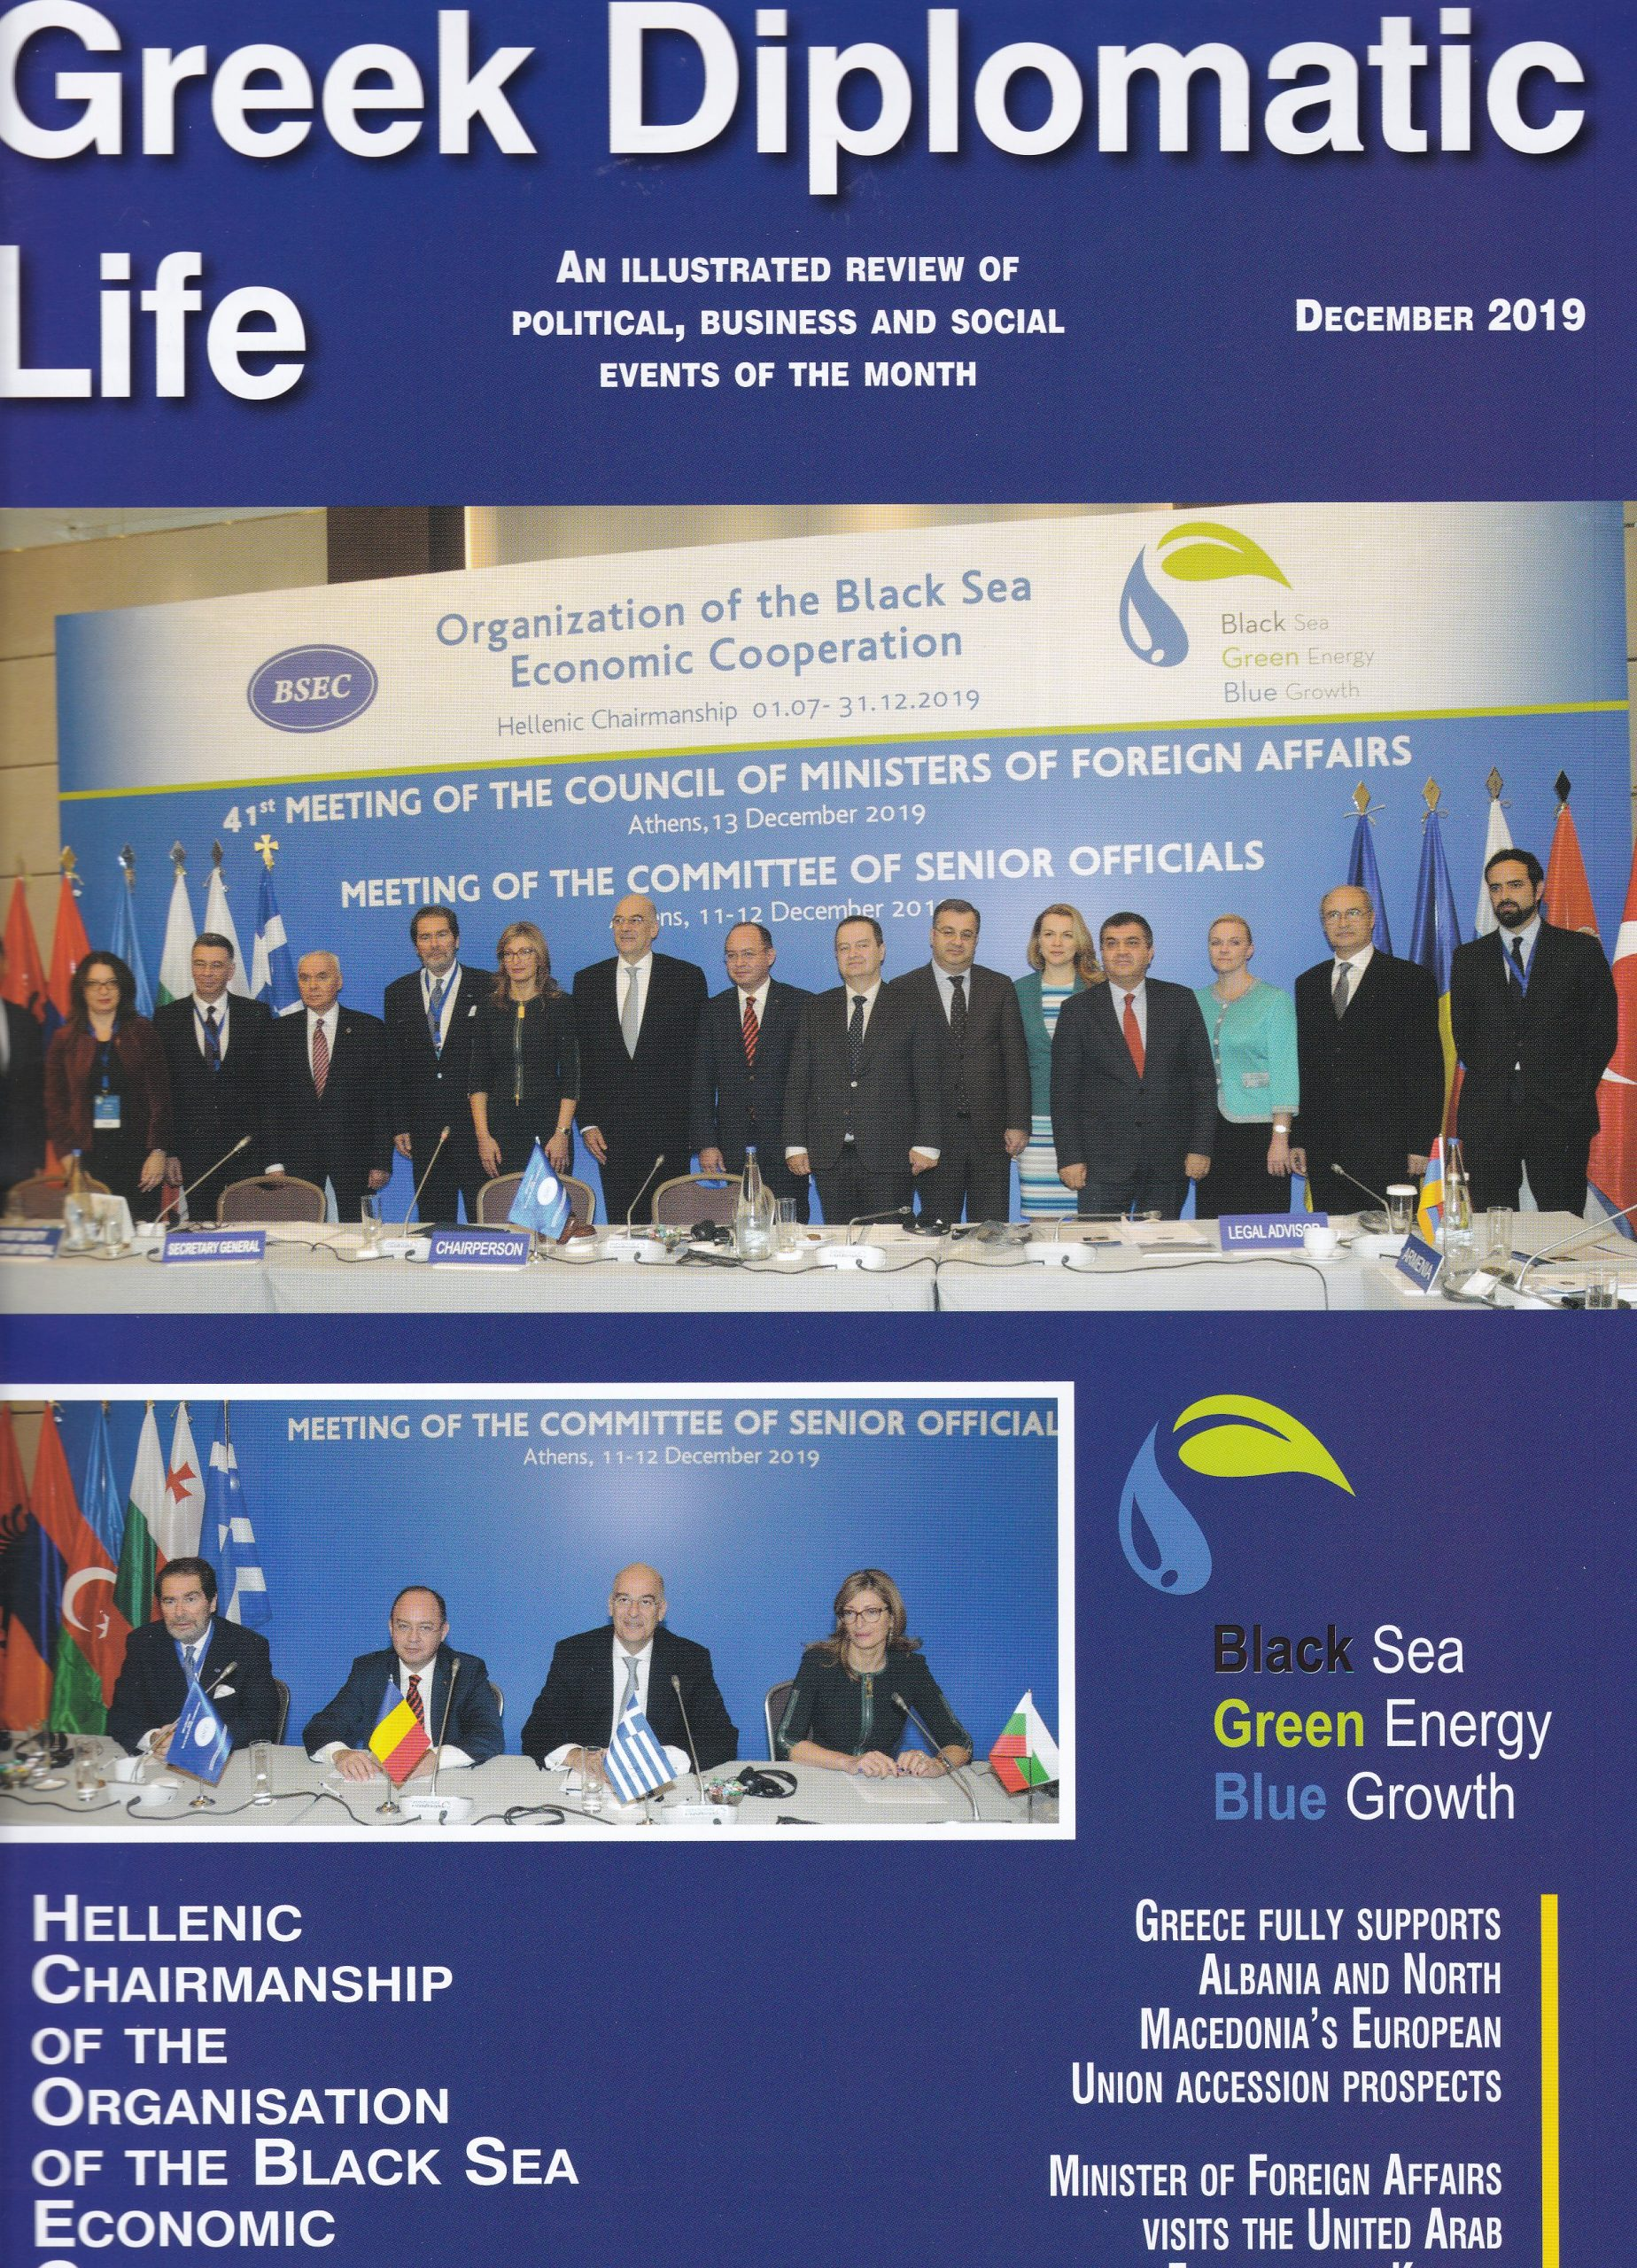 The ICBSS at the Greek Diplomatic Life magazine (December 2019)